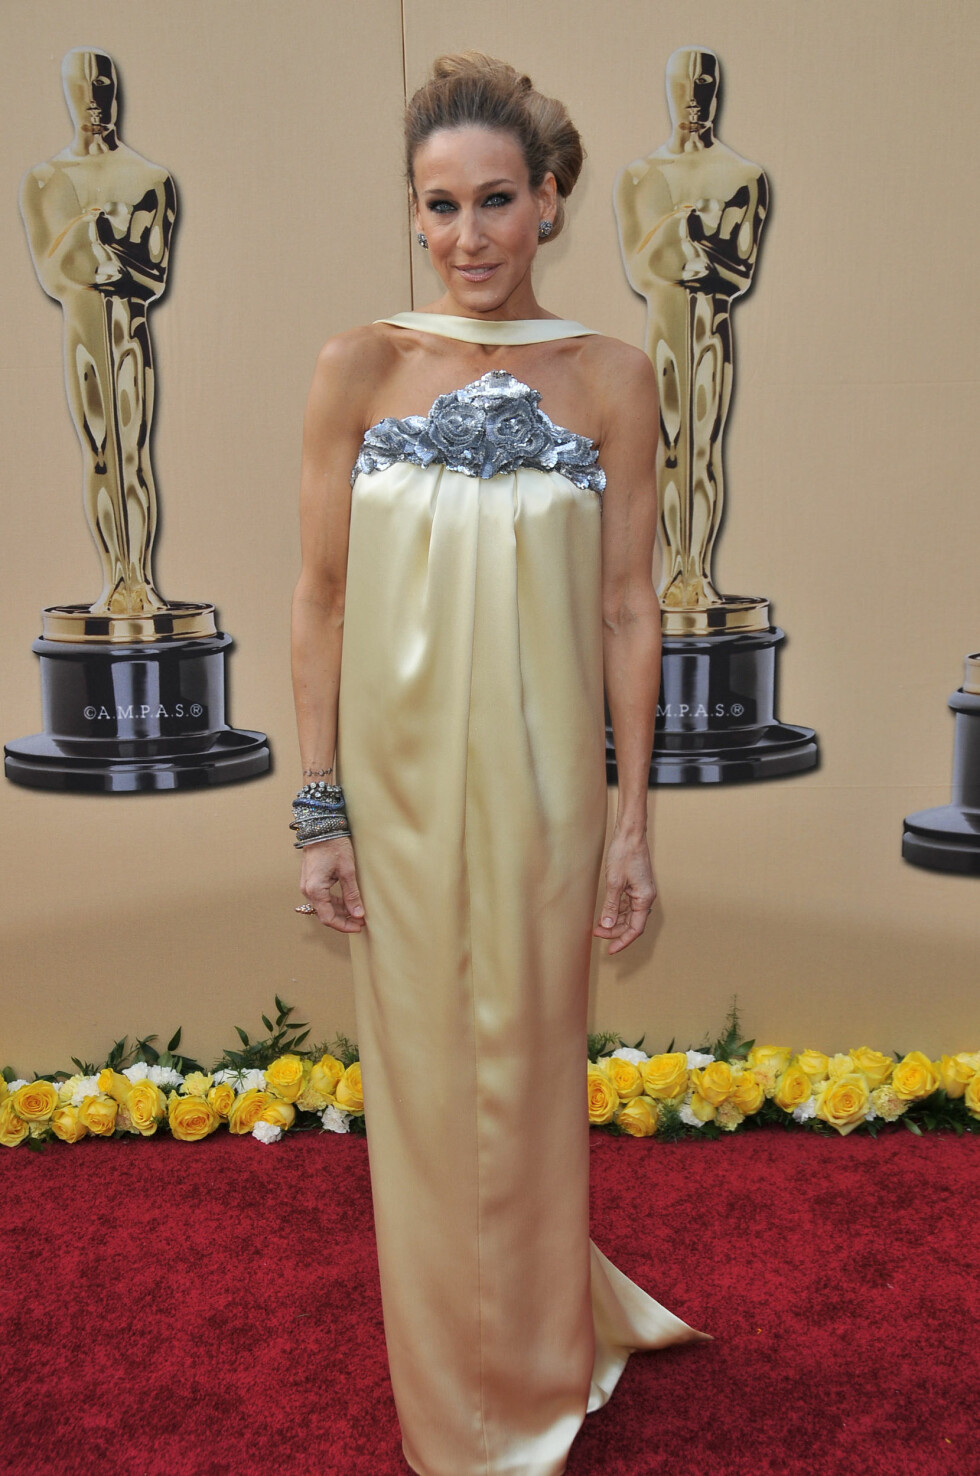 Sarah Jessica Parker at the 82nd Annual Academy Awards Arrivals held at the Kodak Theatre in Hollywood, CA., on March 7, 2010. Photo Credit: Sthanlee B. MIrador_Shooting Star  All Over Press Foto: All Over Press